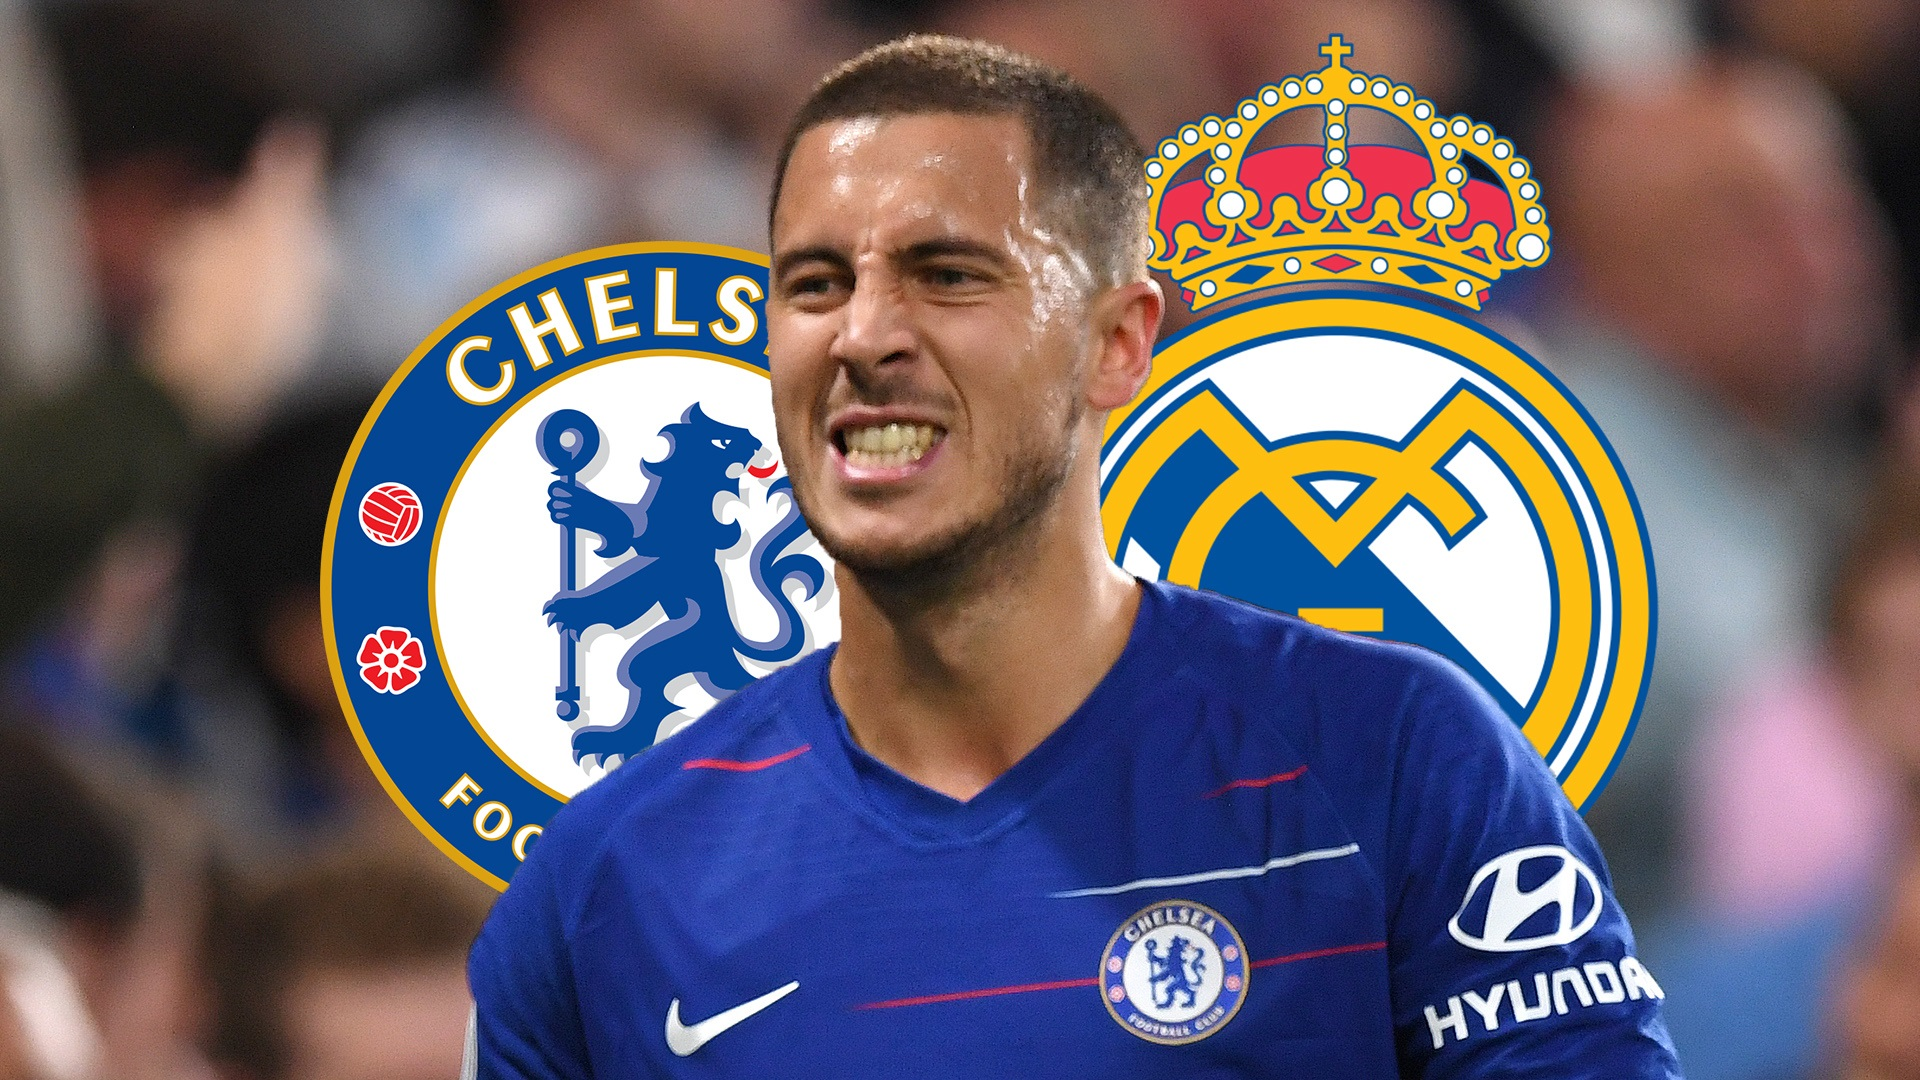 f3ceb8b1605 Transfer news and rumours LIVE  Hazard set on Real Madrid switch ...